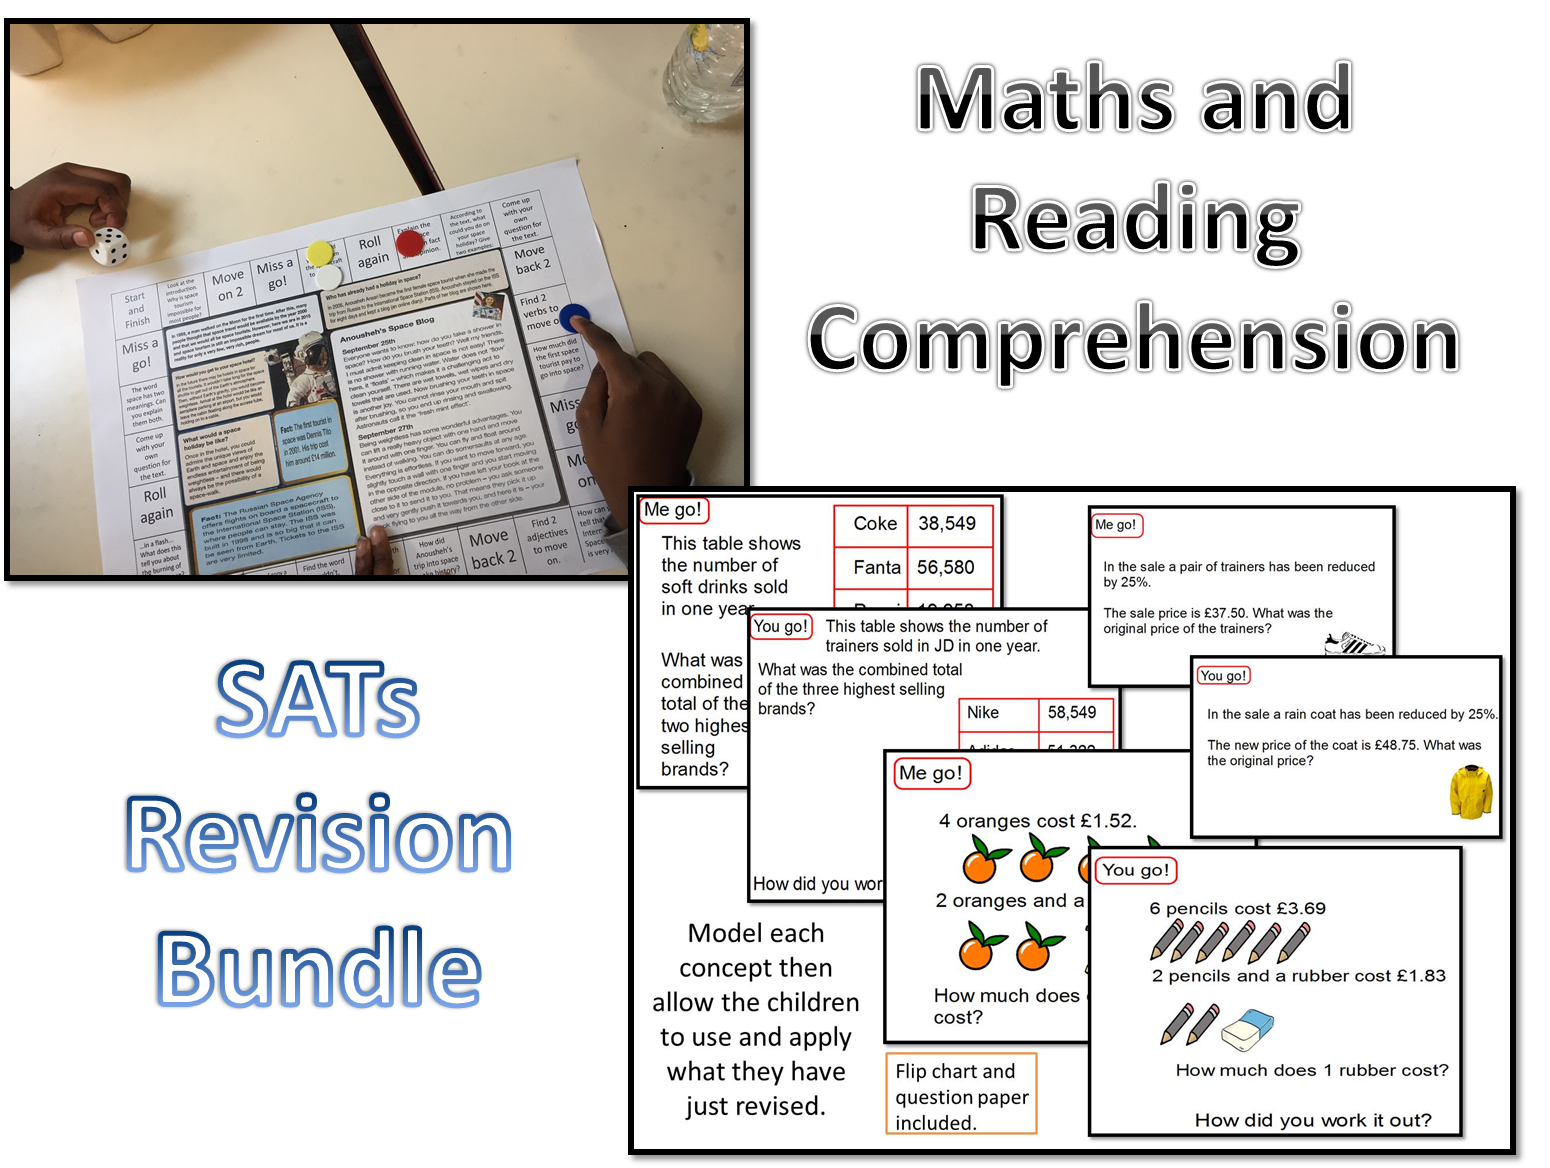 SATs KS2 Year 6 Revision Maths and Reading Comprhension